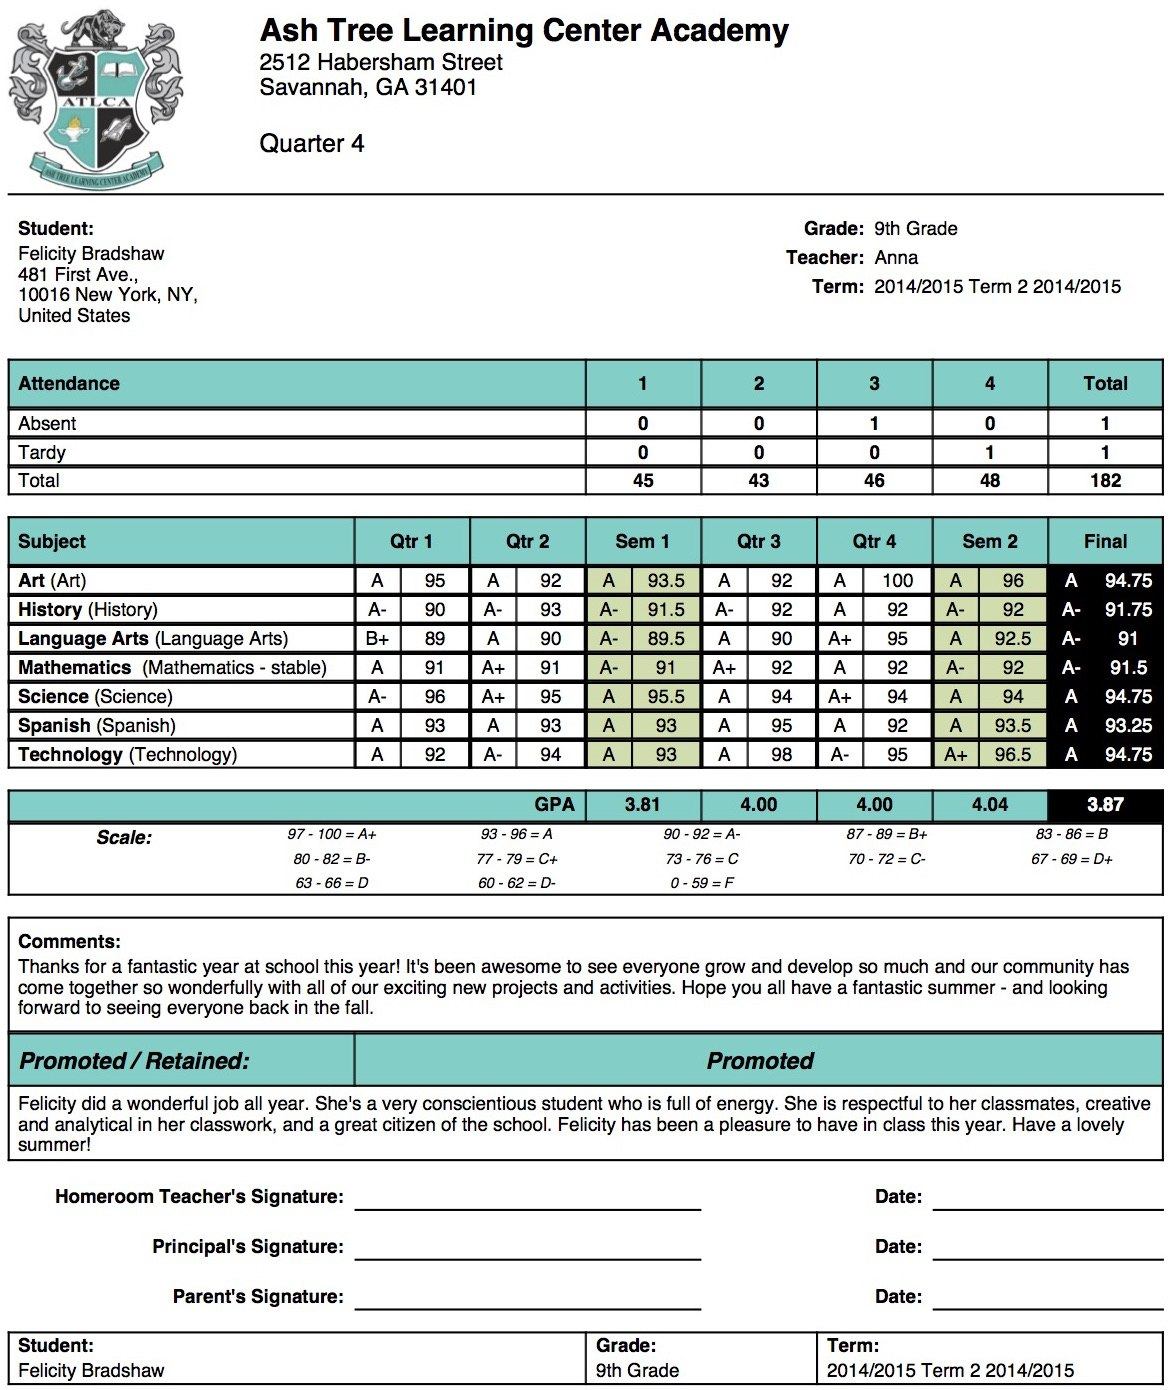 Ash Tree Learning Center Academy Report Card Template  School Throughout Report Card Format Template